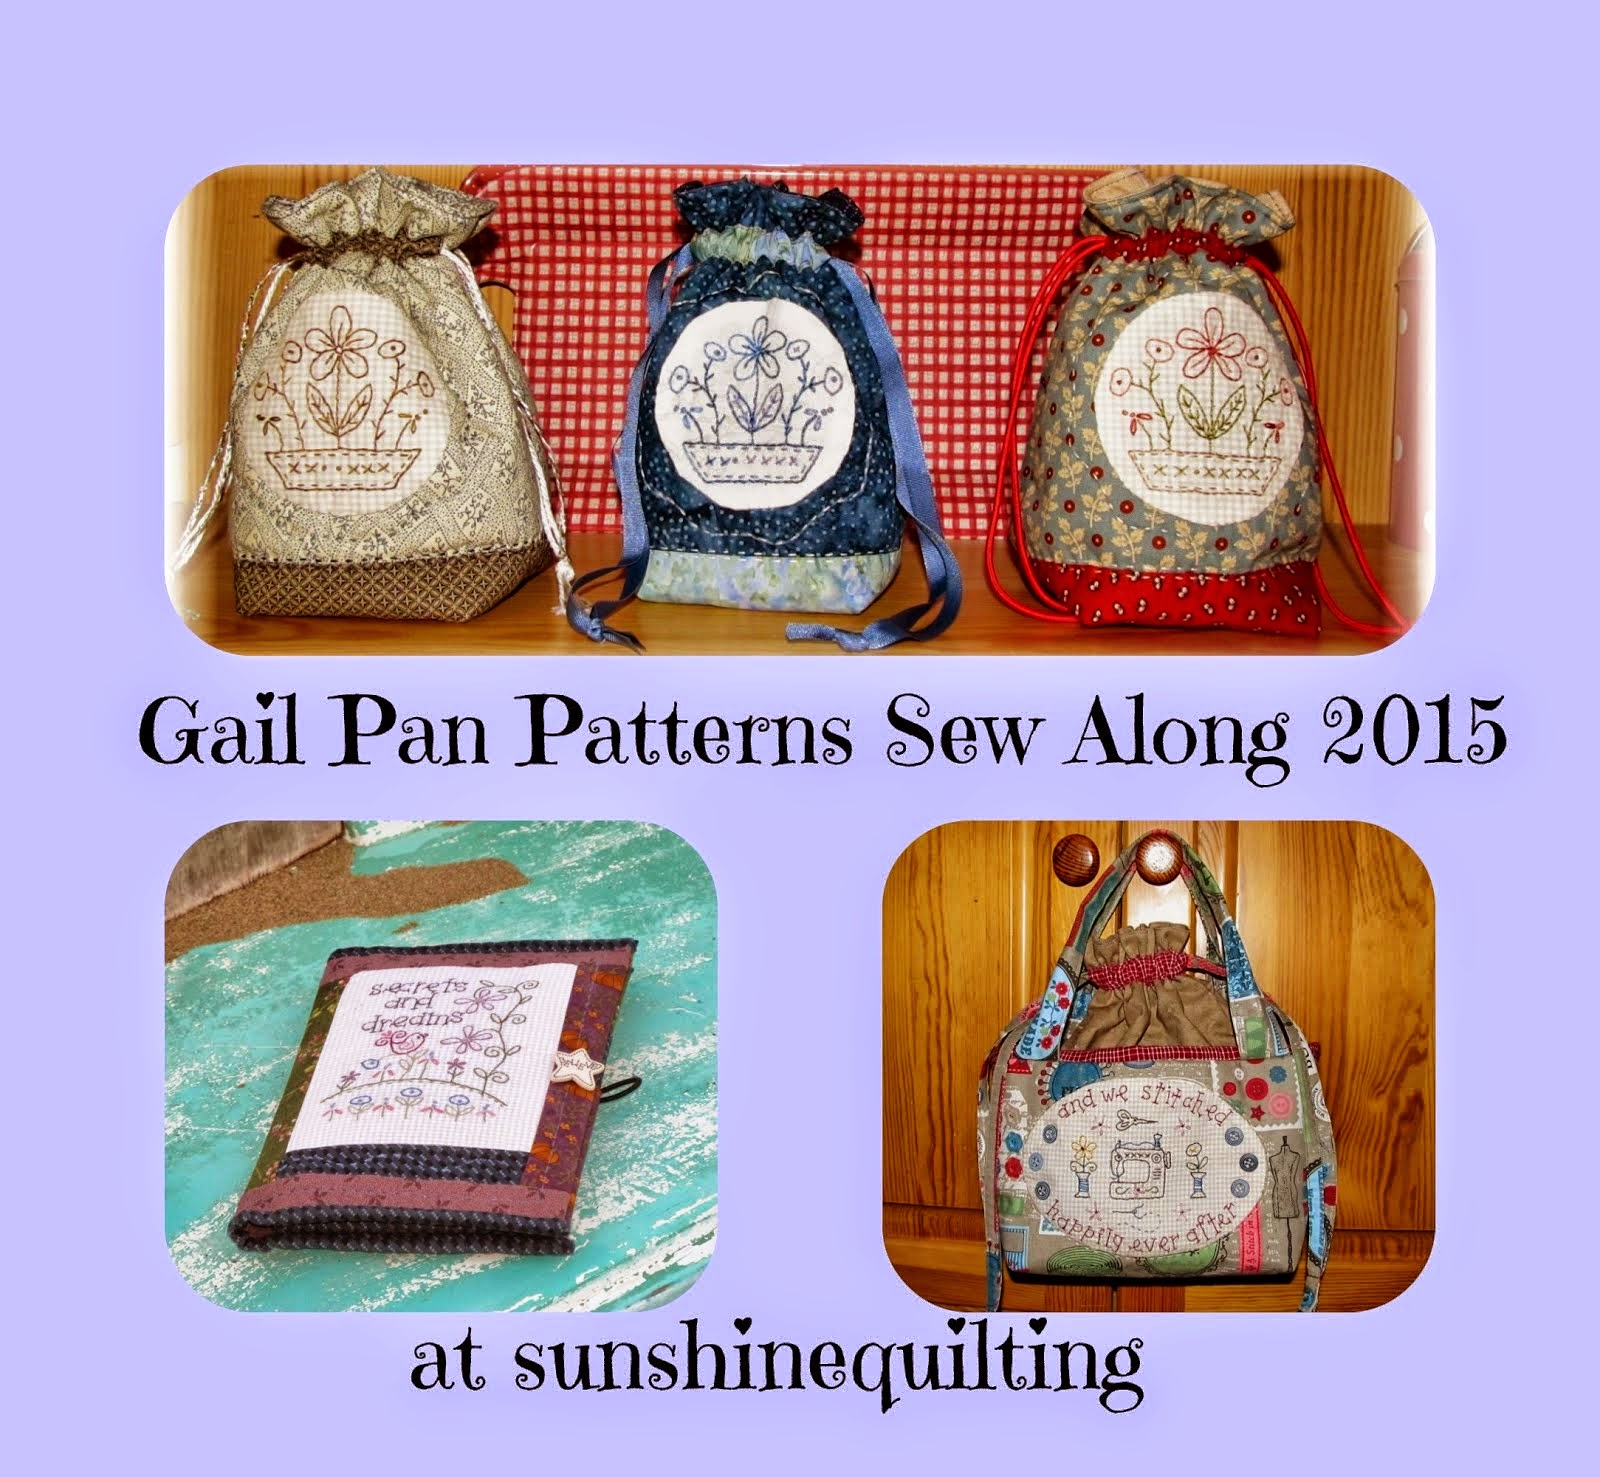 Gail Pan Patterns 2015 SAL